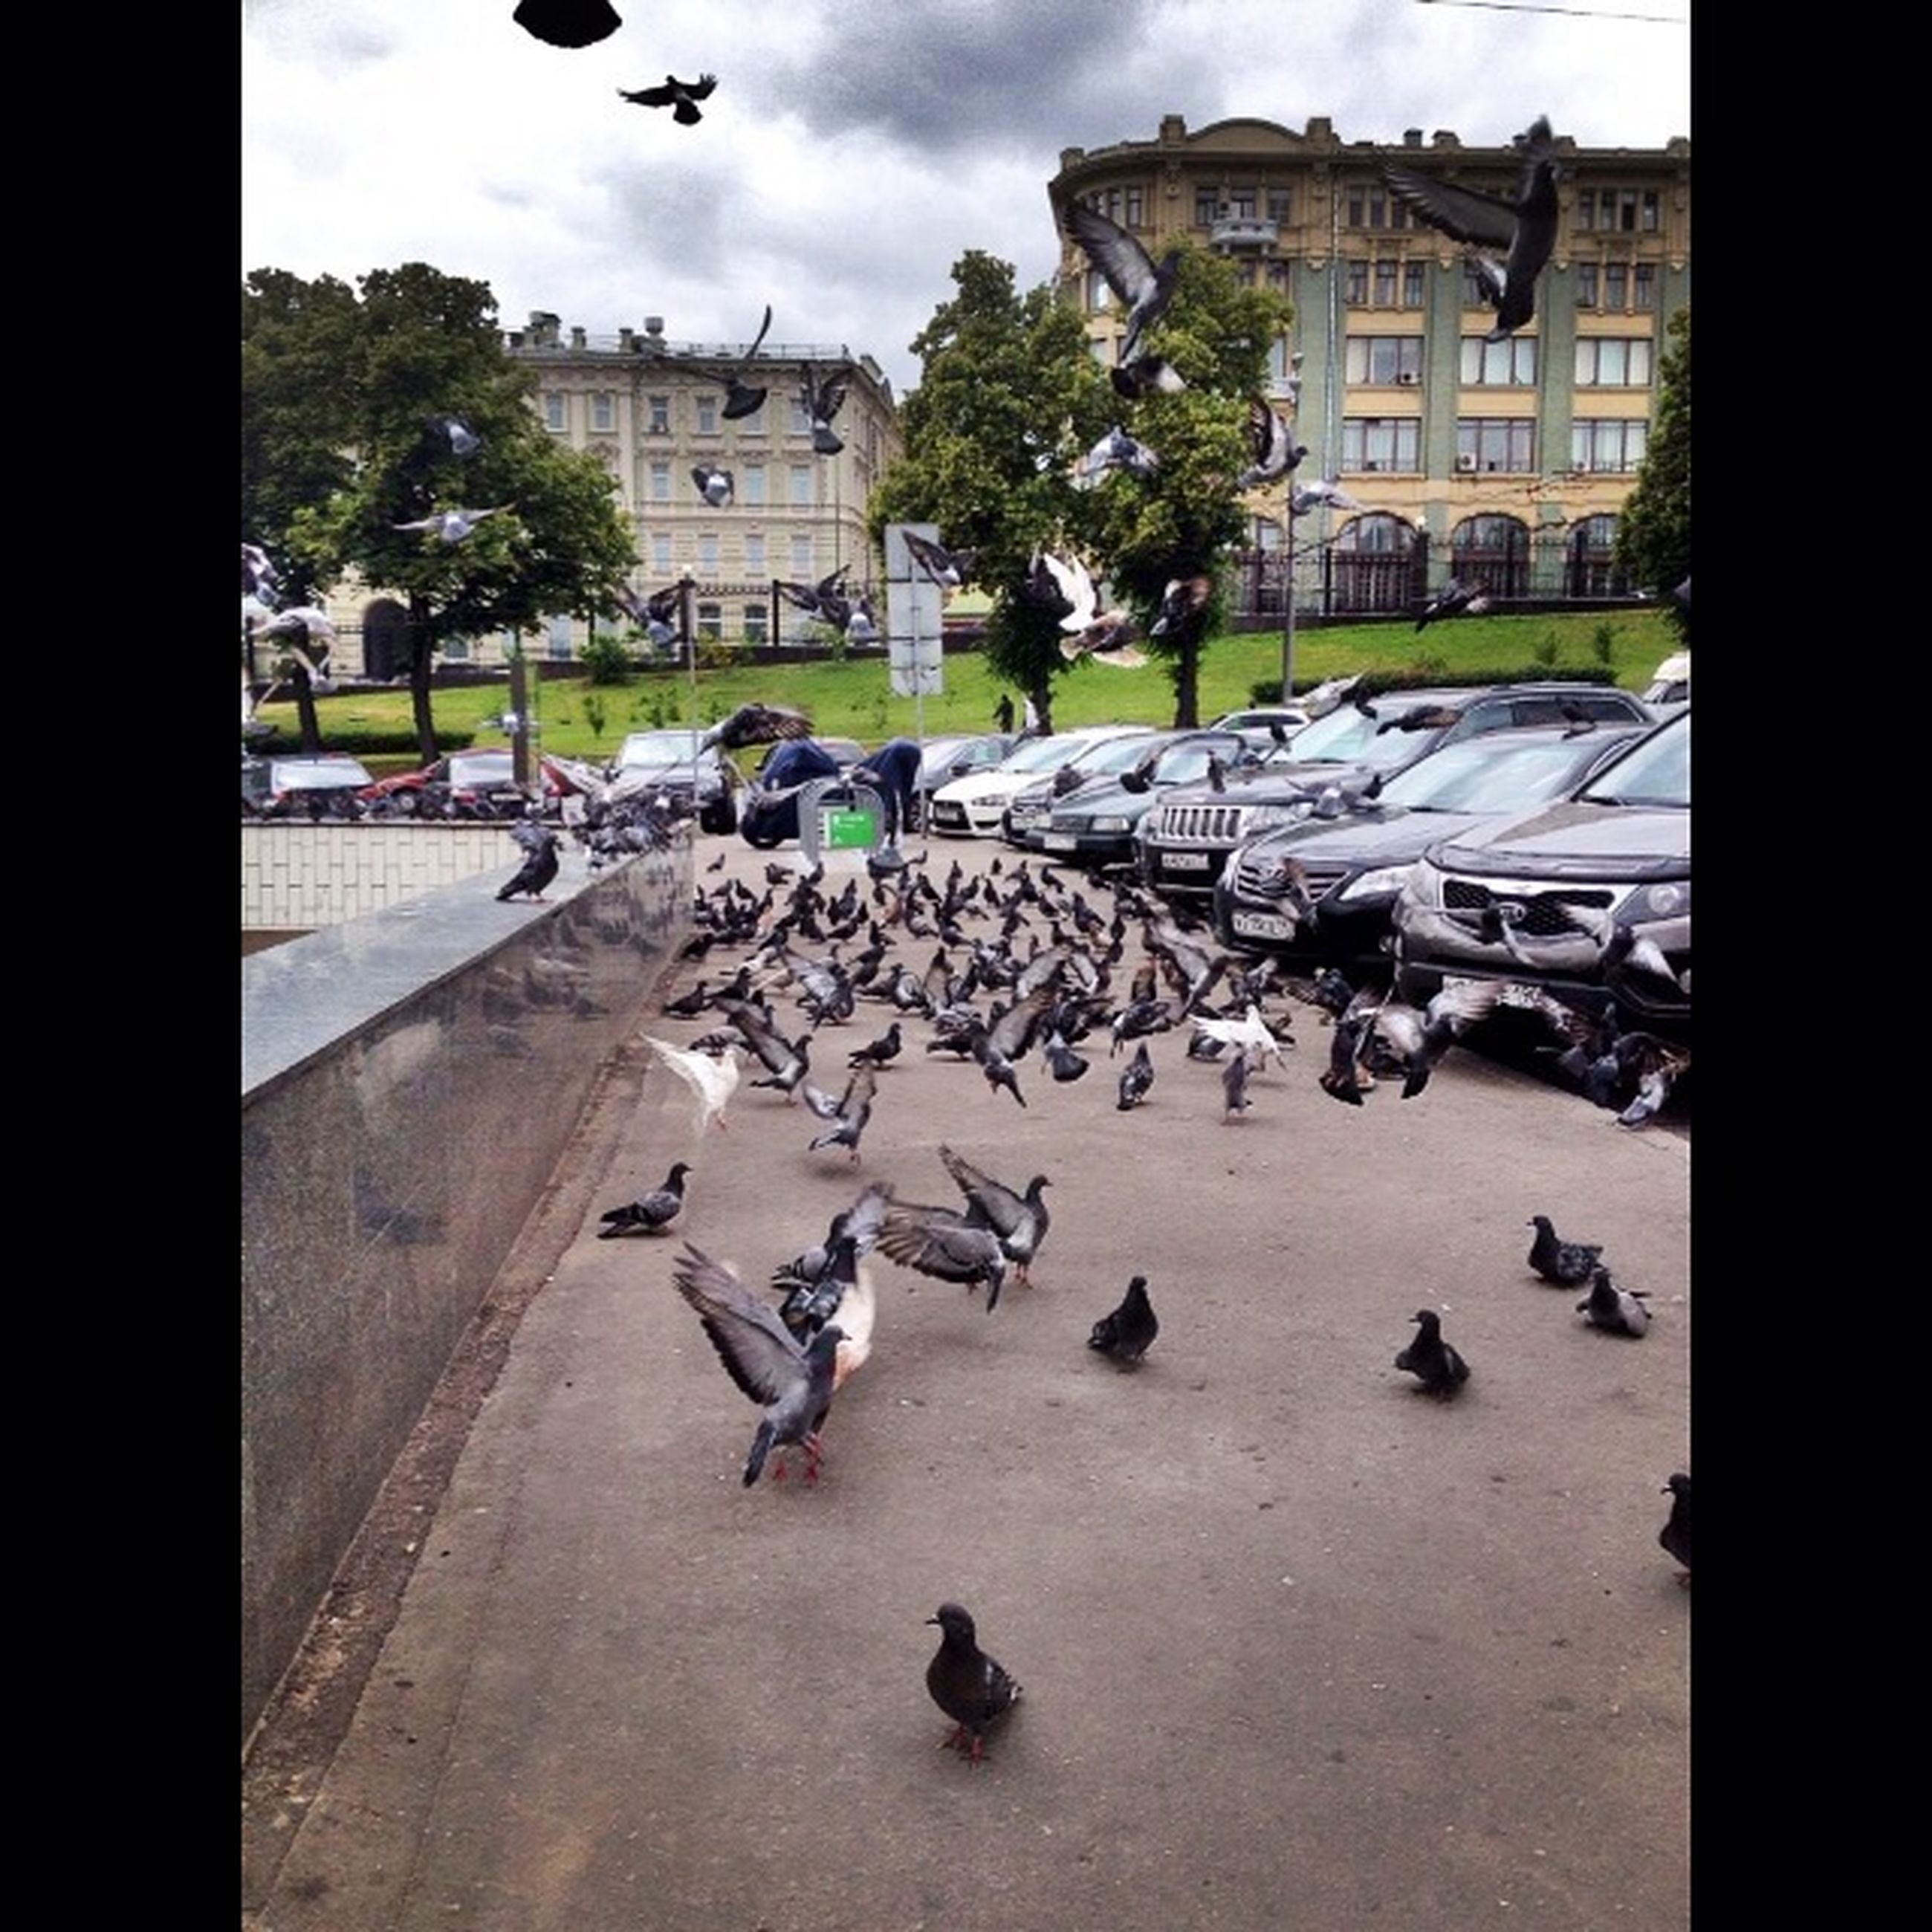 bird, animal themes, building exterior, wildlife, animals in the wild, architecture, built structure, flying, flock of birds, transfer print, pigeon, city, auto post production filter, high angle view, medium group of animals, sky, street, seagull, day